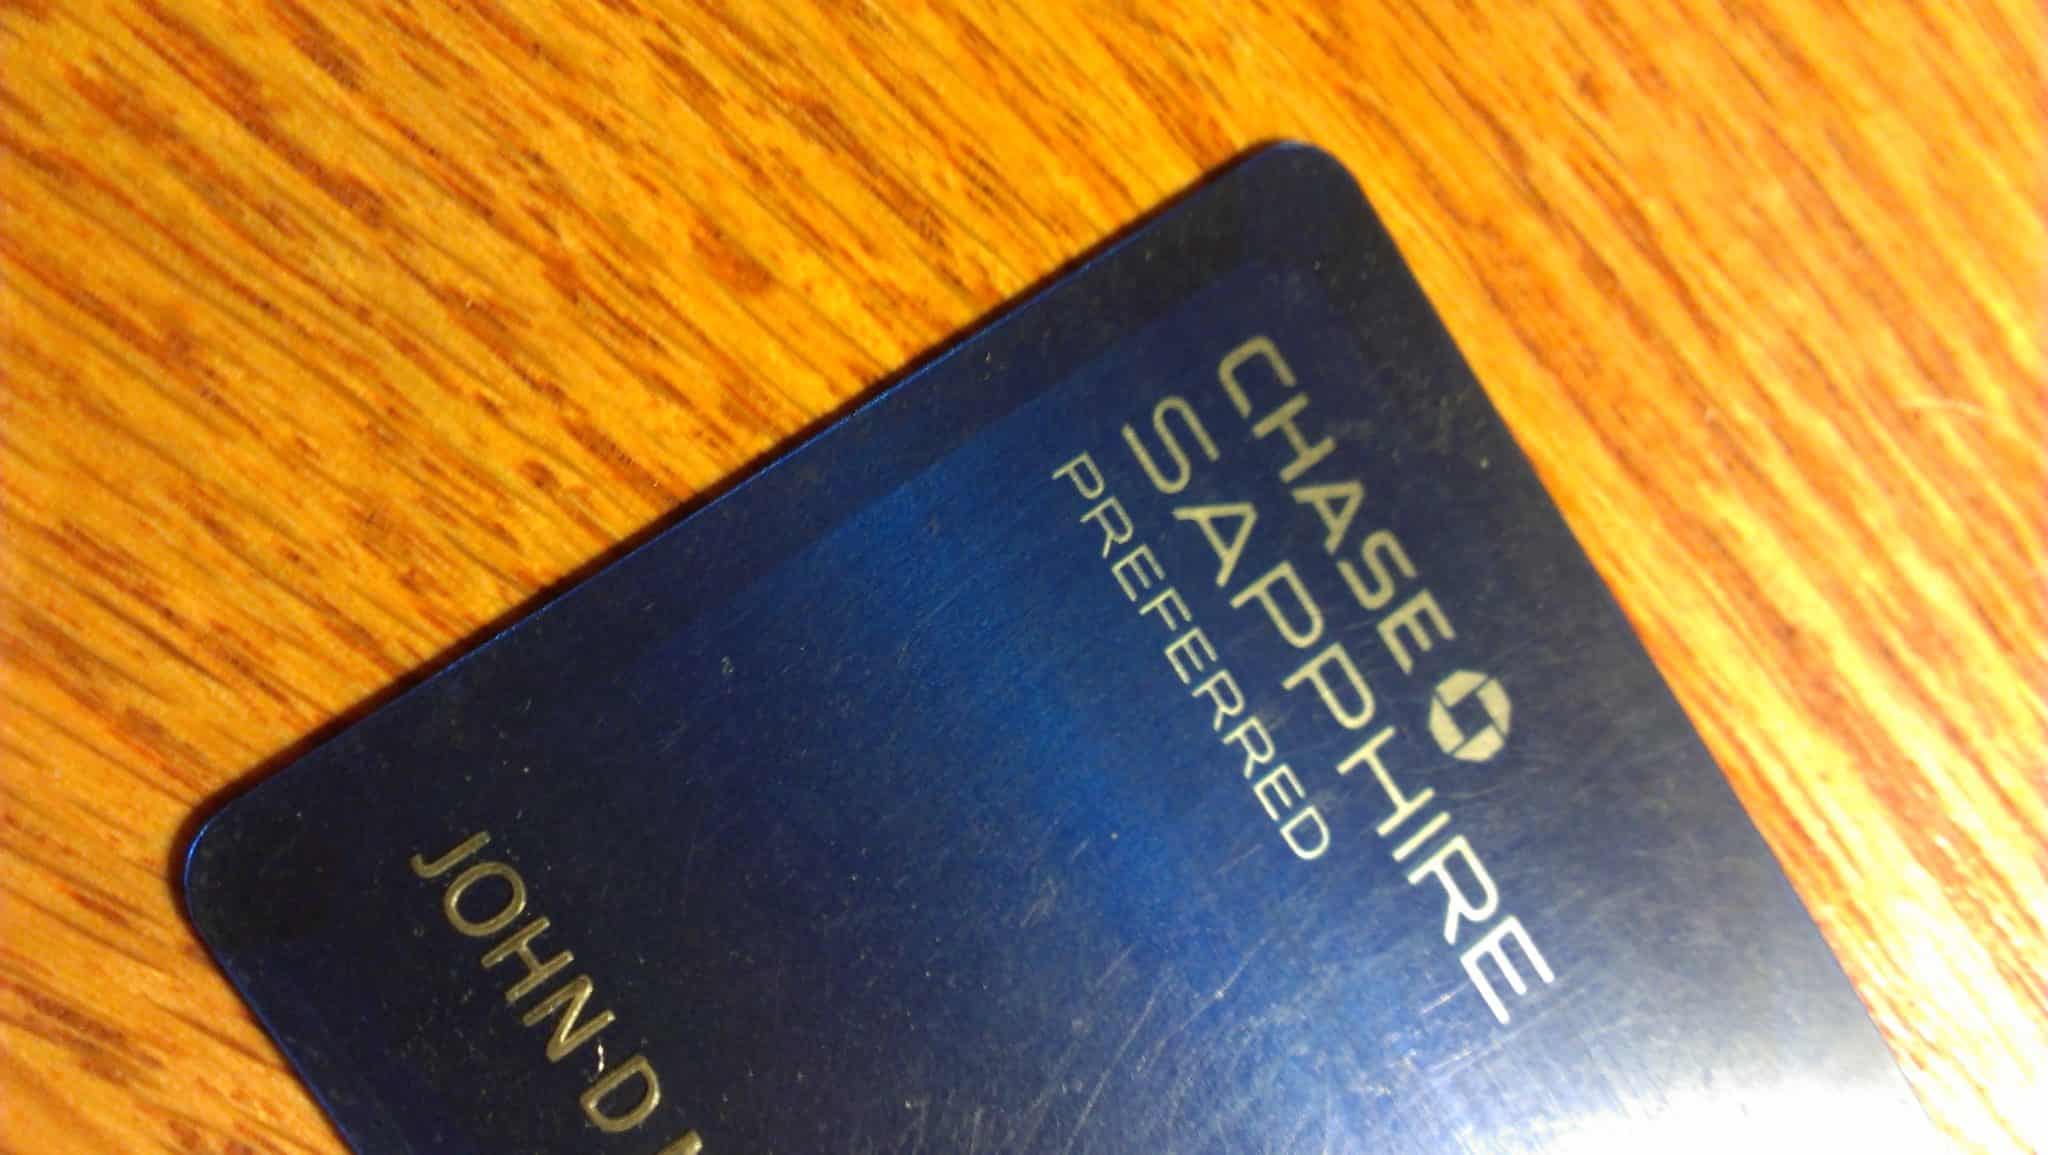 This Credit Card is Dangerous for Introverts but Good for the Ego